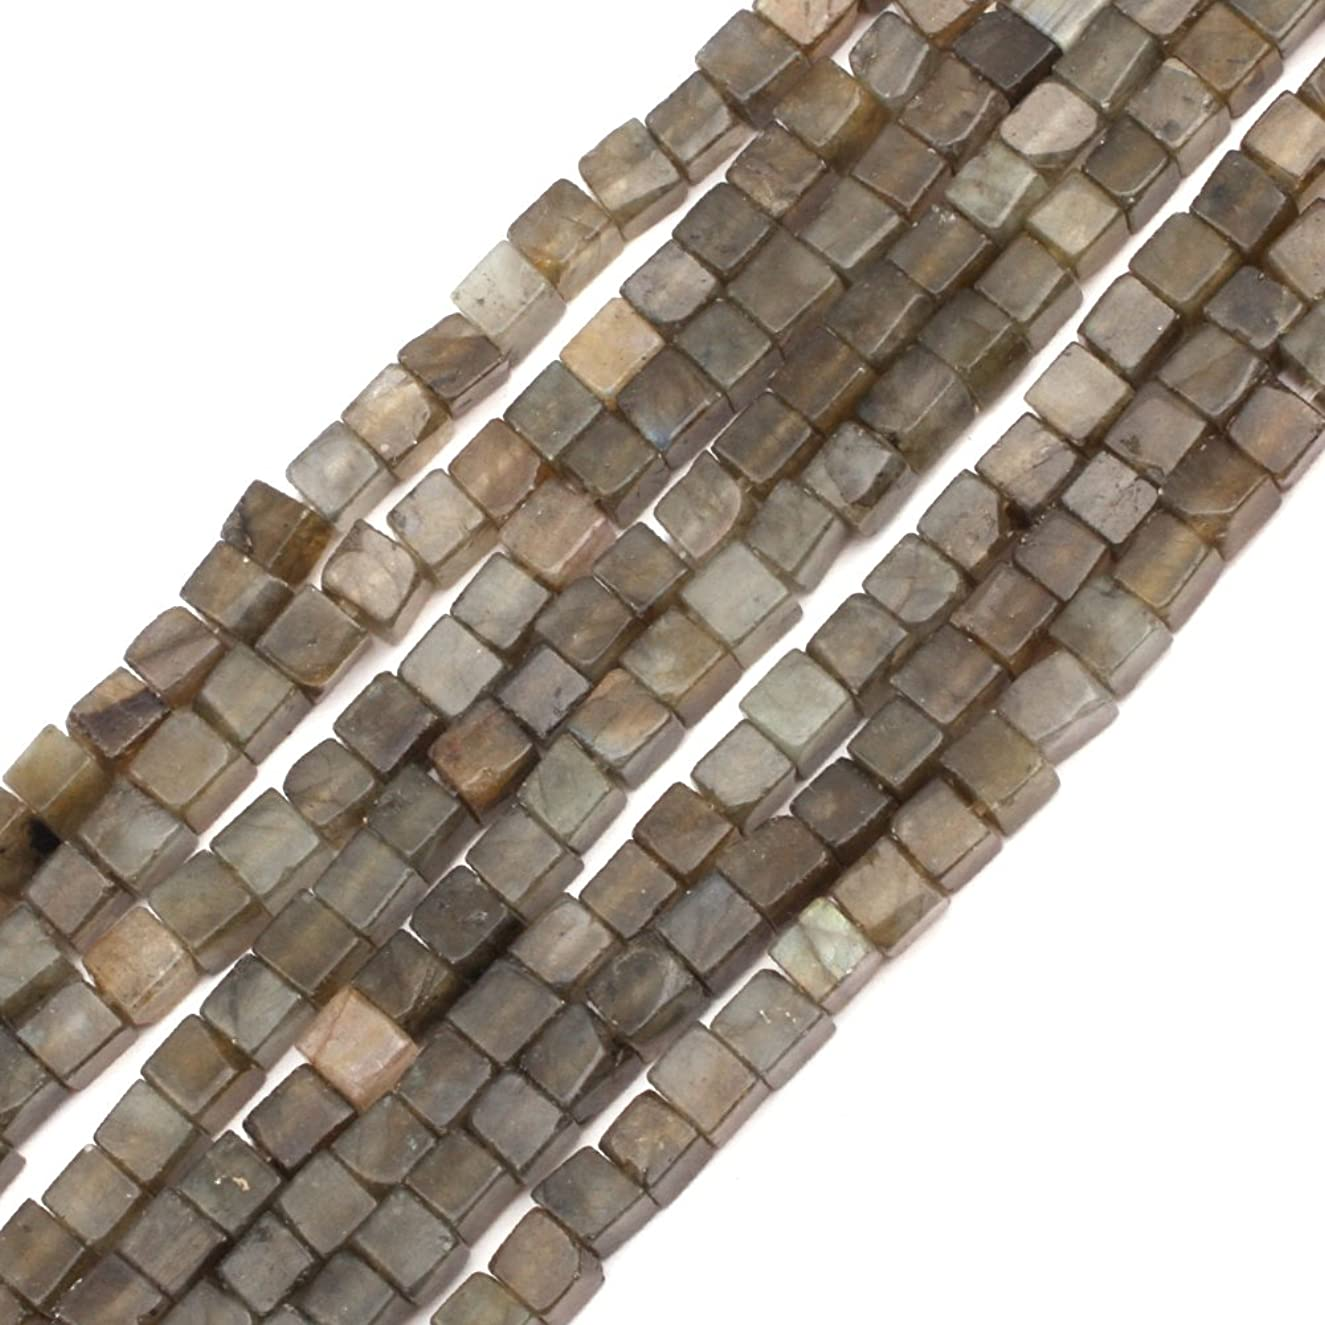 GEM-inside Labradorite Gemstone Loose Beads 4mm Gray Cube Smooth Crystal Energy Stone Power Beads For Jewelry Making 15